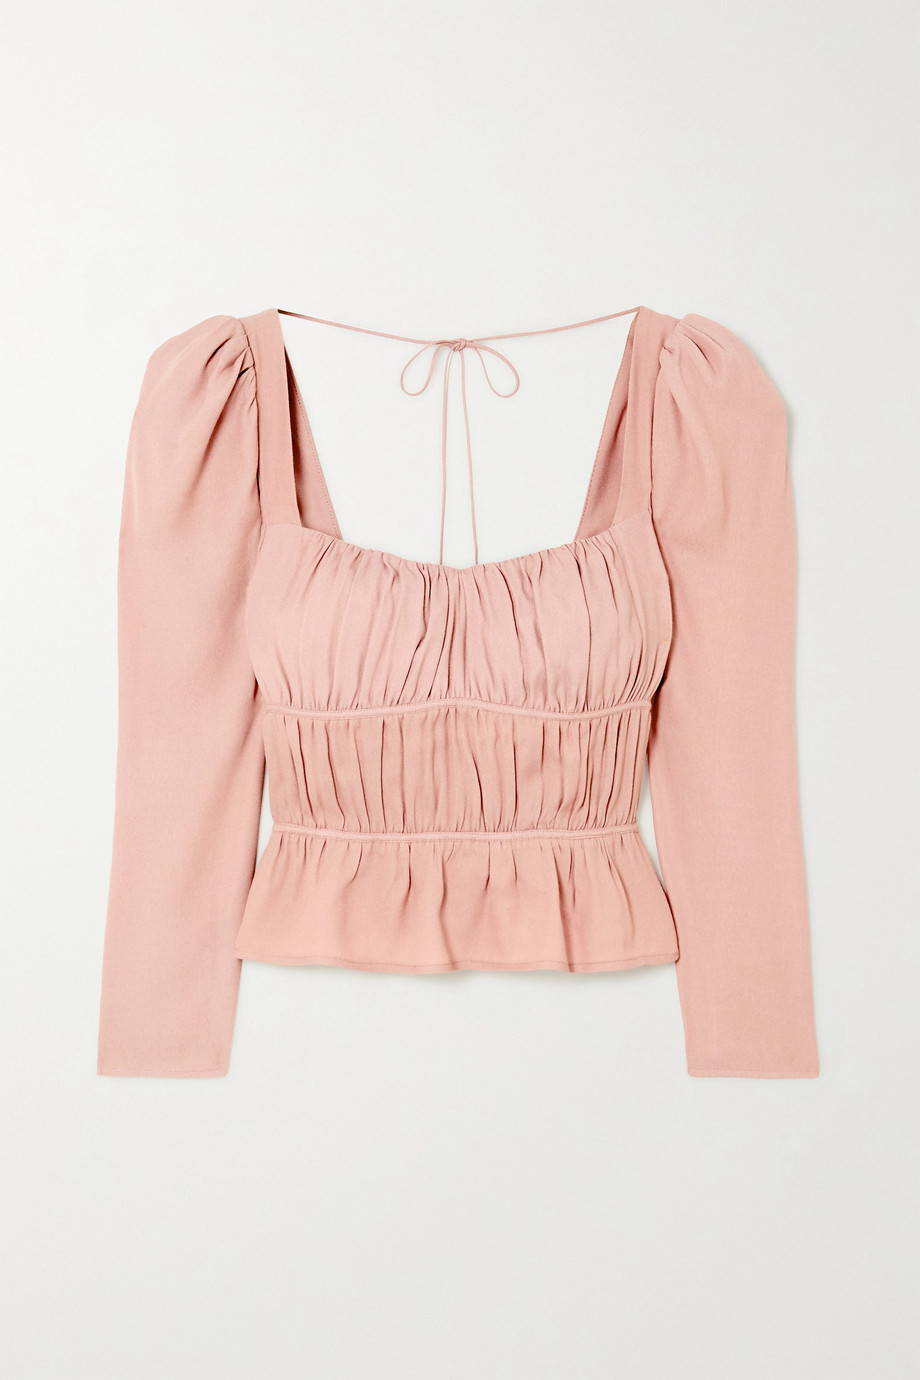 Reformation + NET SUSTAIN Plath shirred crepe blouse